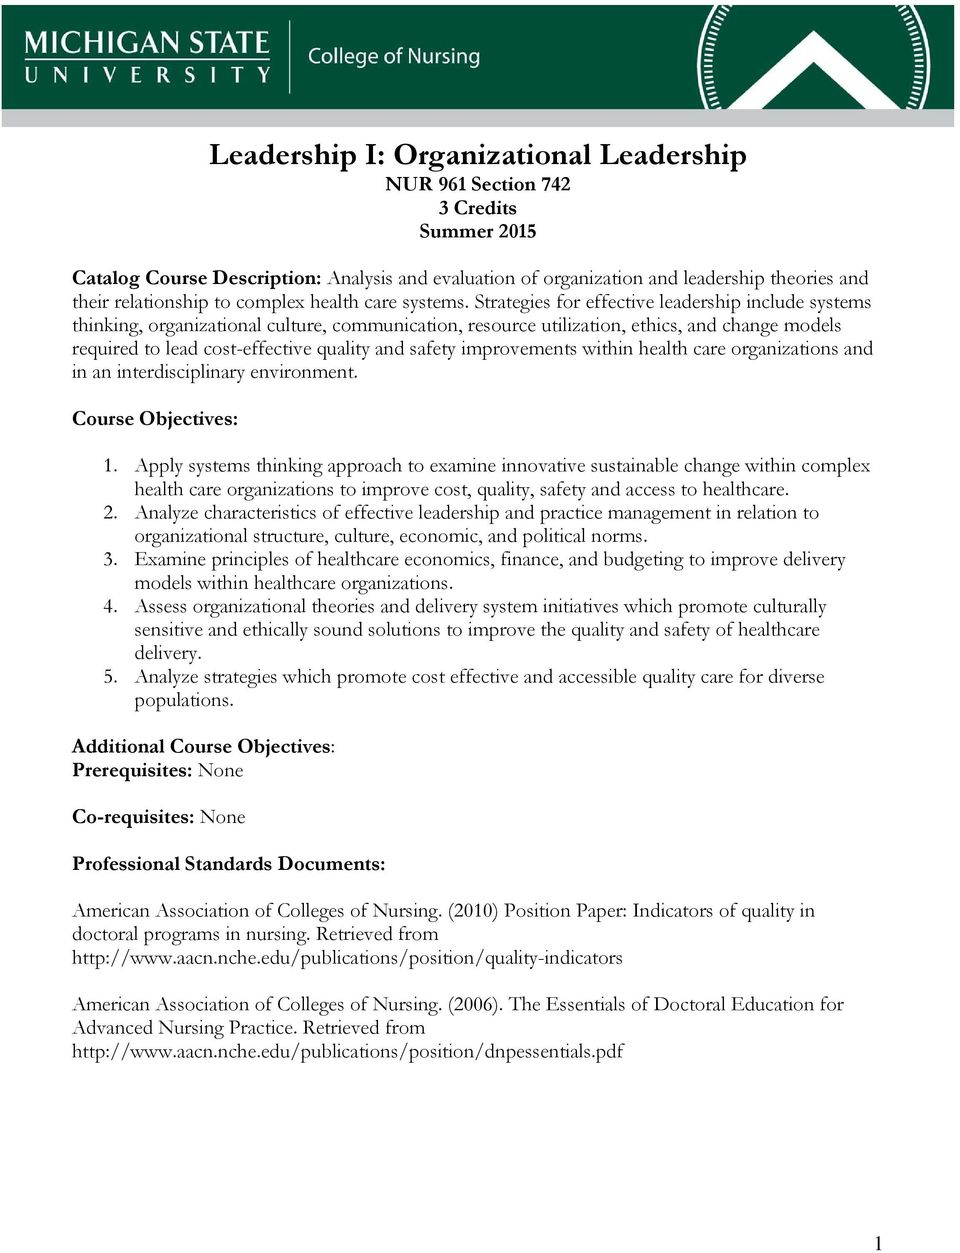 Strategies for effective leadership include systems thinking, organizational culture, communication, resource utilization, ethics, and change models required to lead cost-effective quality and safety